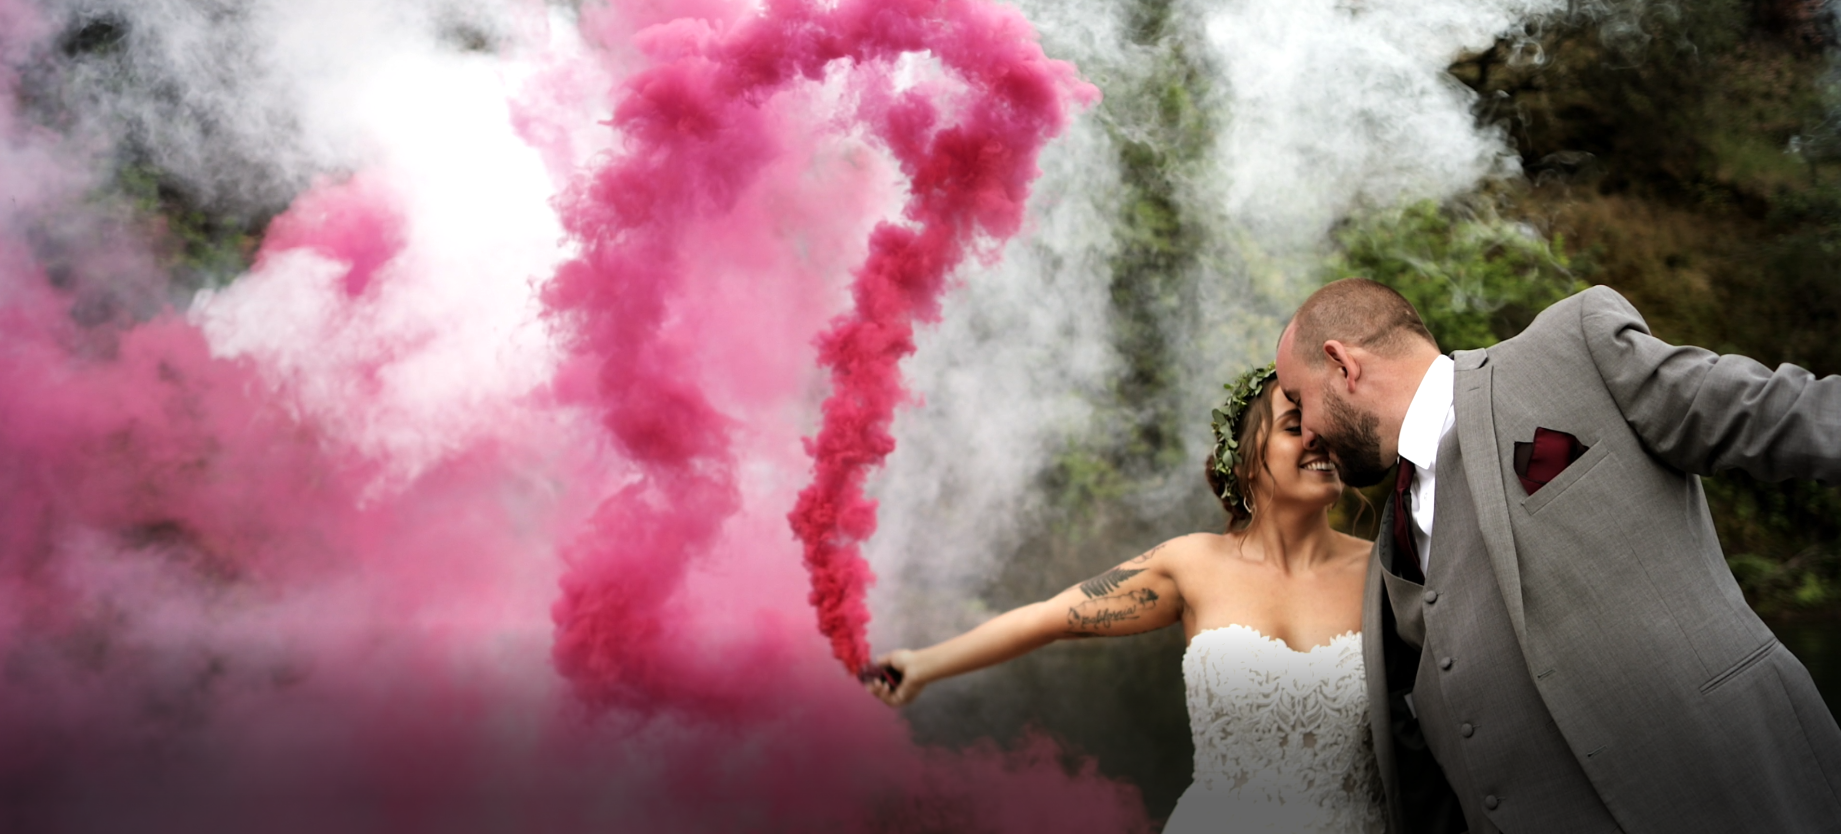 Bride and Groom holding smoke bombs for their wedding video